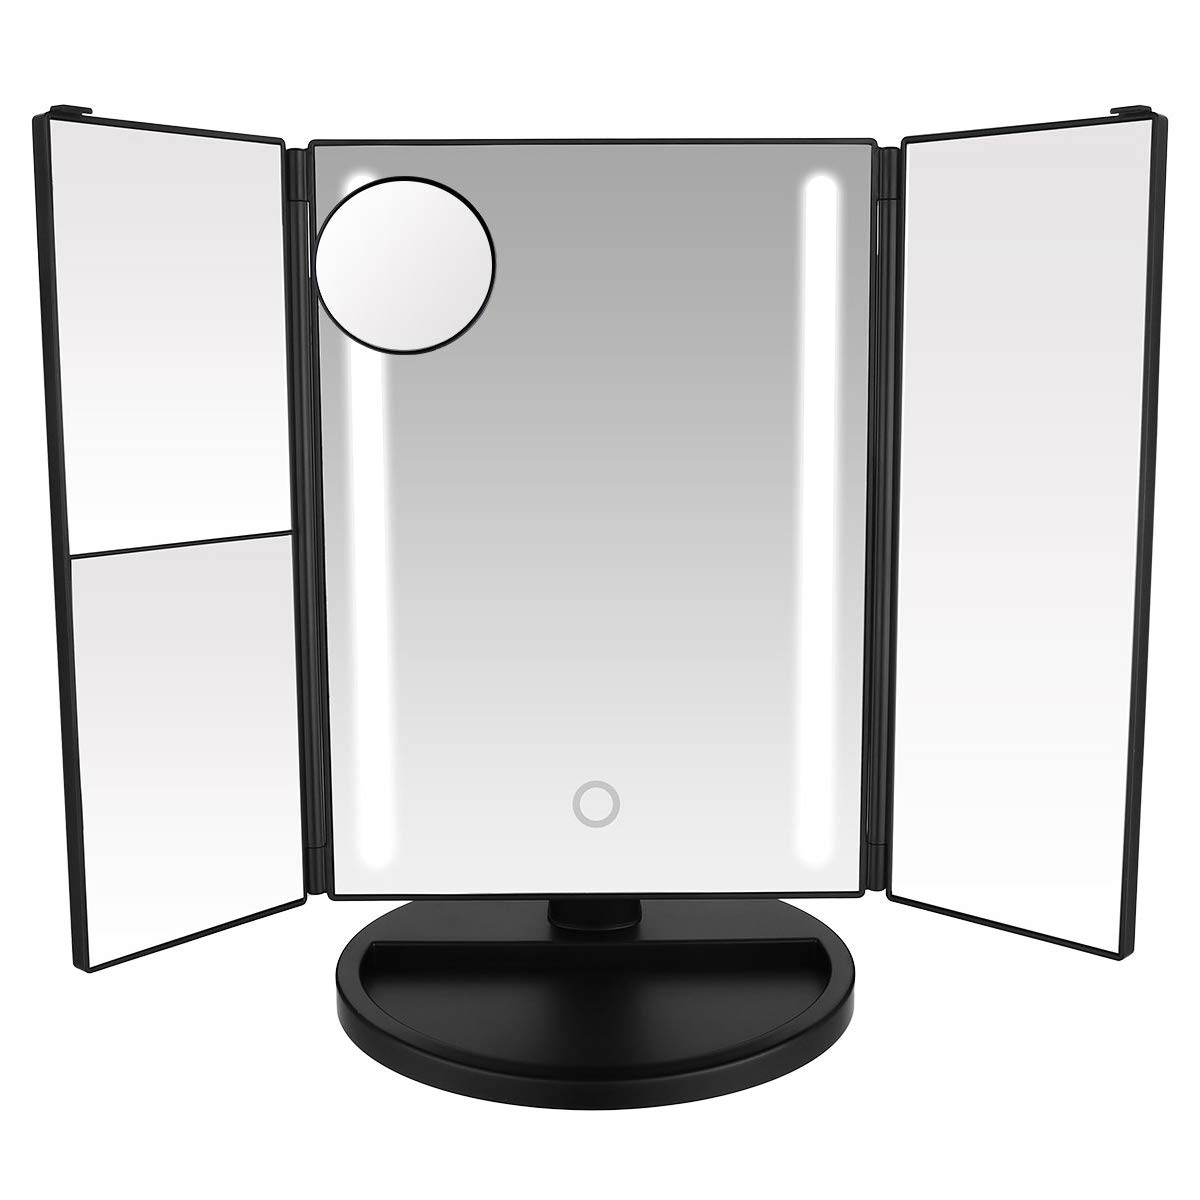 LEPO LED Makeup Mirror, Makeup Vanity Mirror with 1X/2X/3X/10X Magnification, Cosmetic Mirror with 24 LED Lights, 180 Degree Adjustable Rotation (Black)